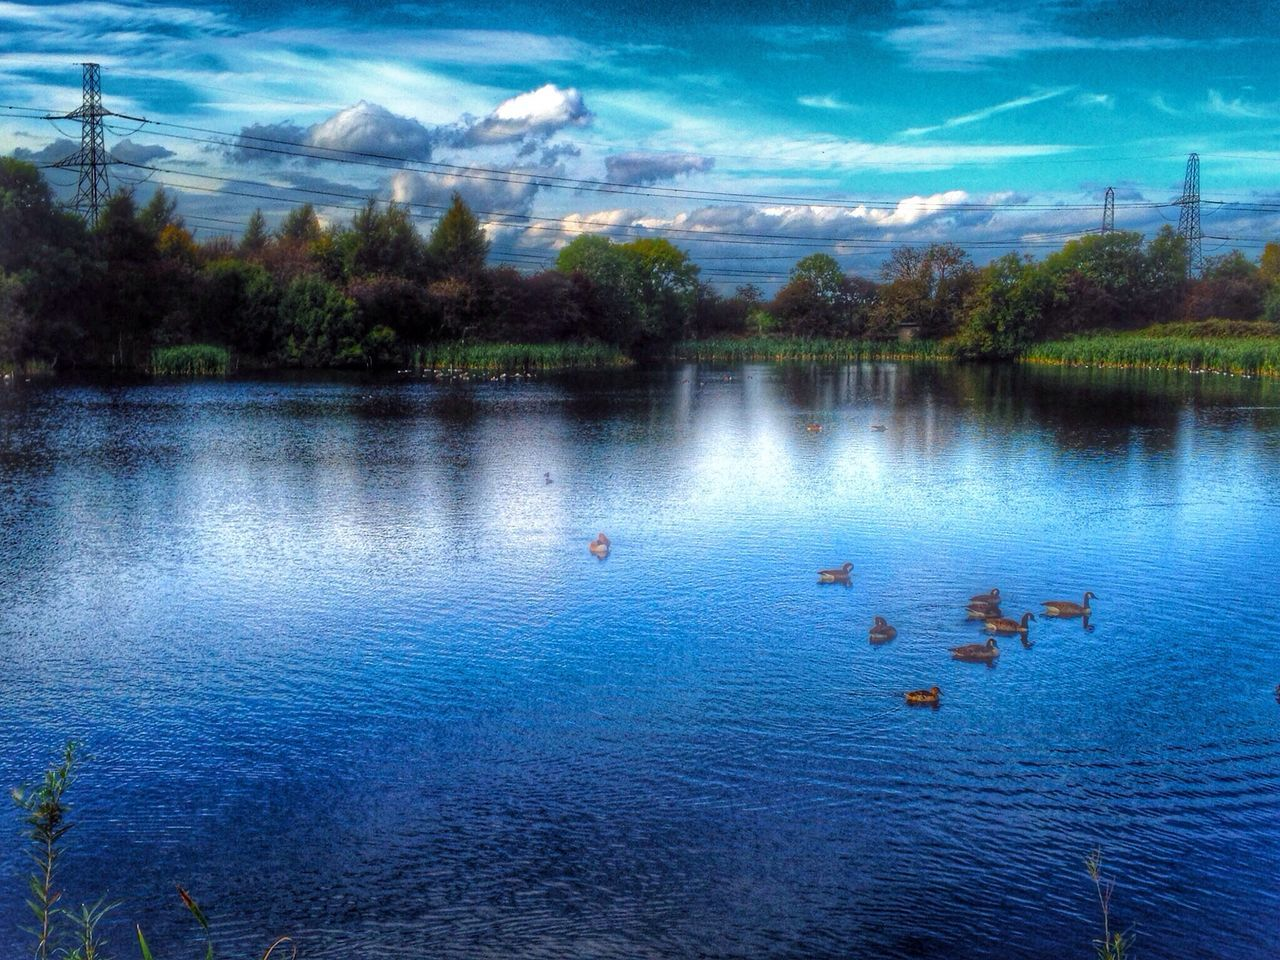 animal themes, bird, animals in the wild, water, large group of animals, animal wildlife, cloud - sky, duck, reflection, lake, tree, nature, sky, no people, outdoors, beauty in nature, day, swimming, scenics, water bird, flock of birds, blue, swan